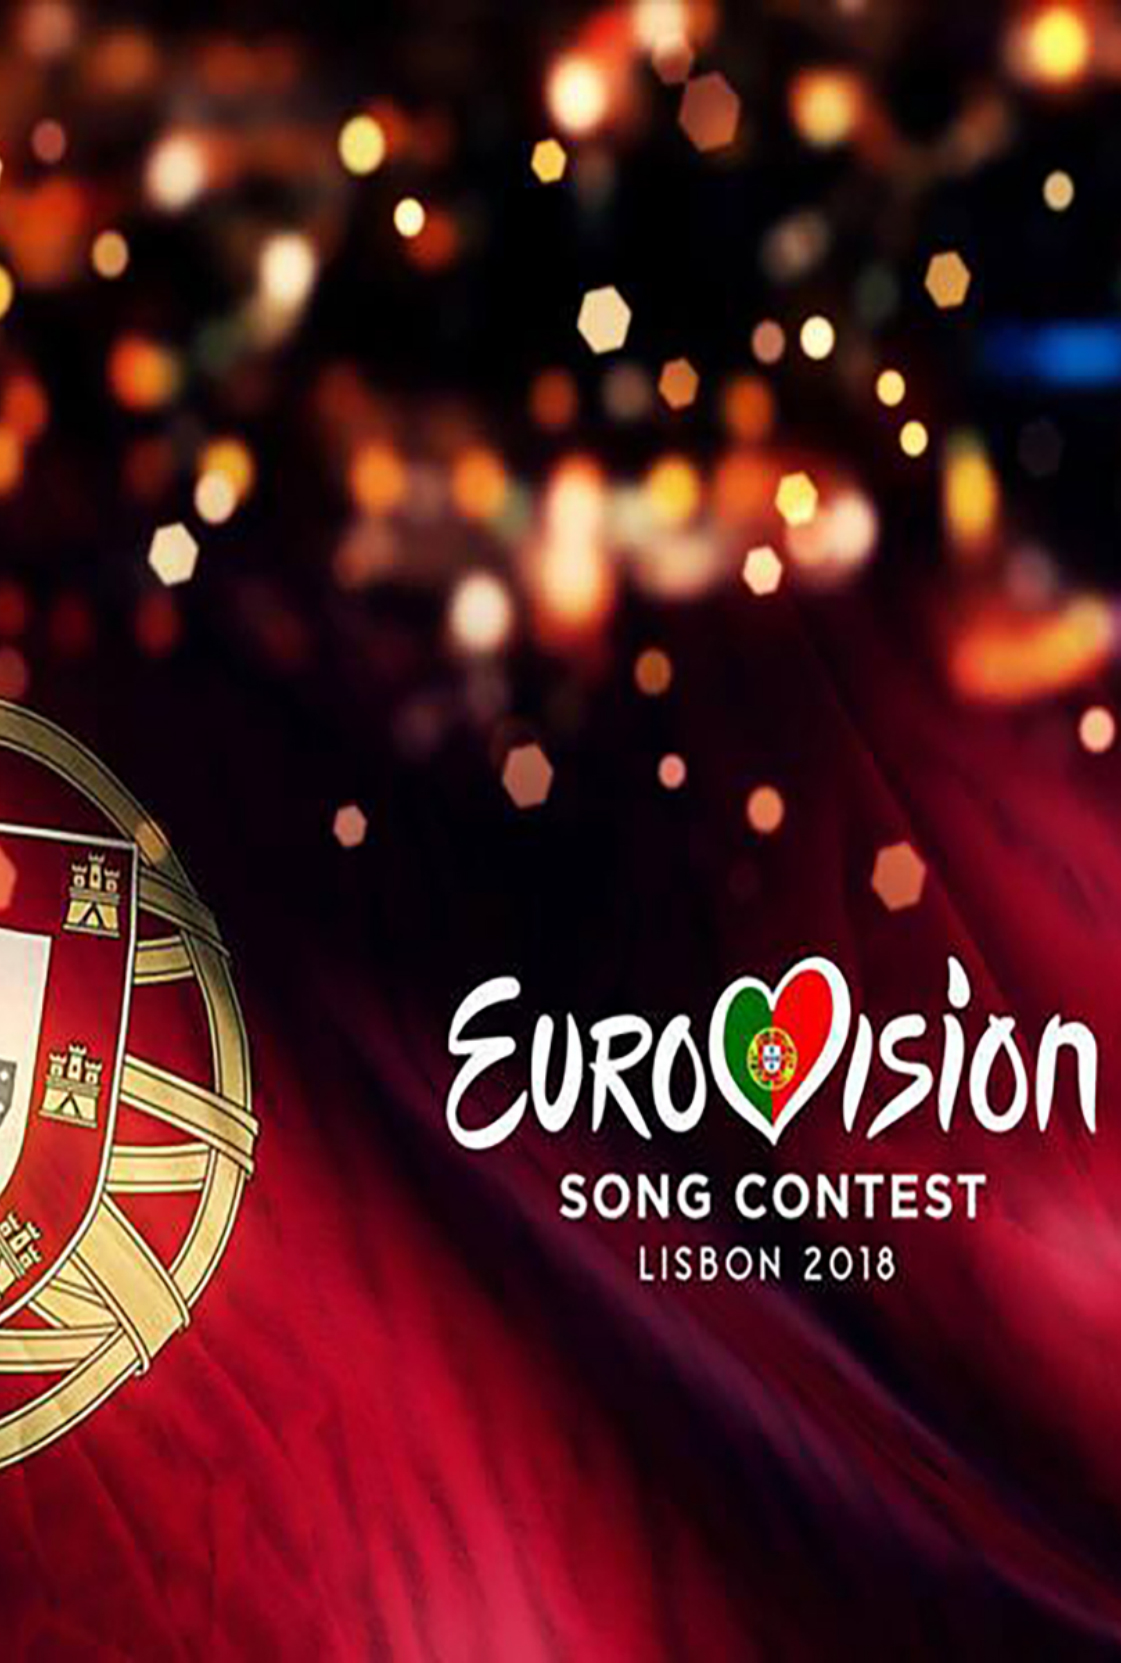 EUROVISION 2018: INSPIRING THE WORLD THROUGH MUSIC AND DESIGN